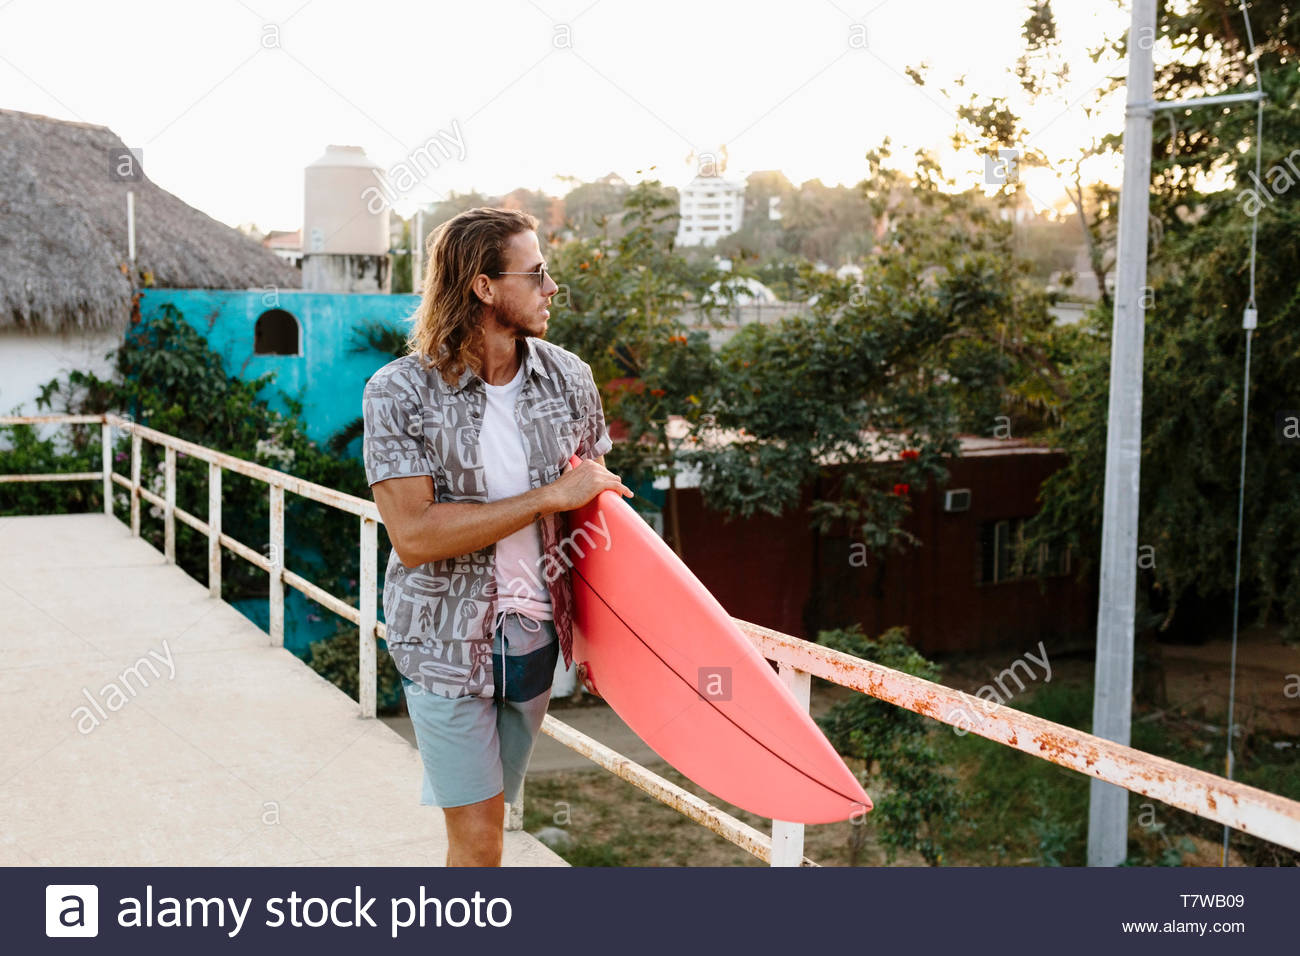 Young male surfer carrying surfboard, Mexique Photo Stock